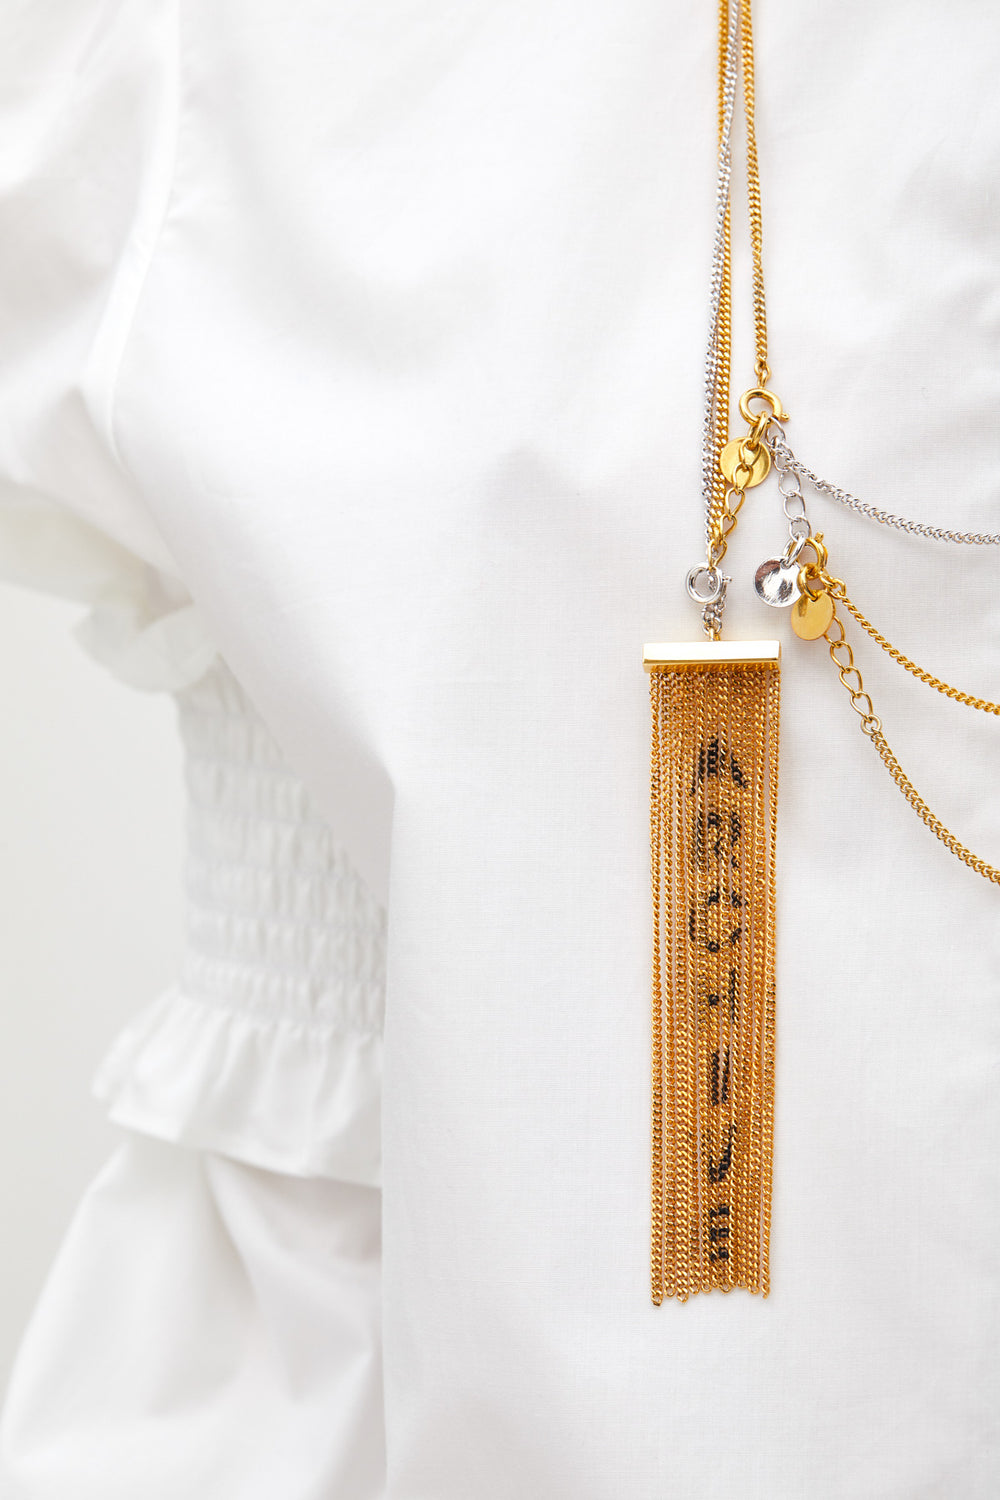 Studio Avra - ARCHIVE FRINGED NECKLACE